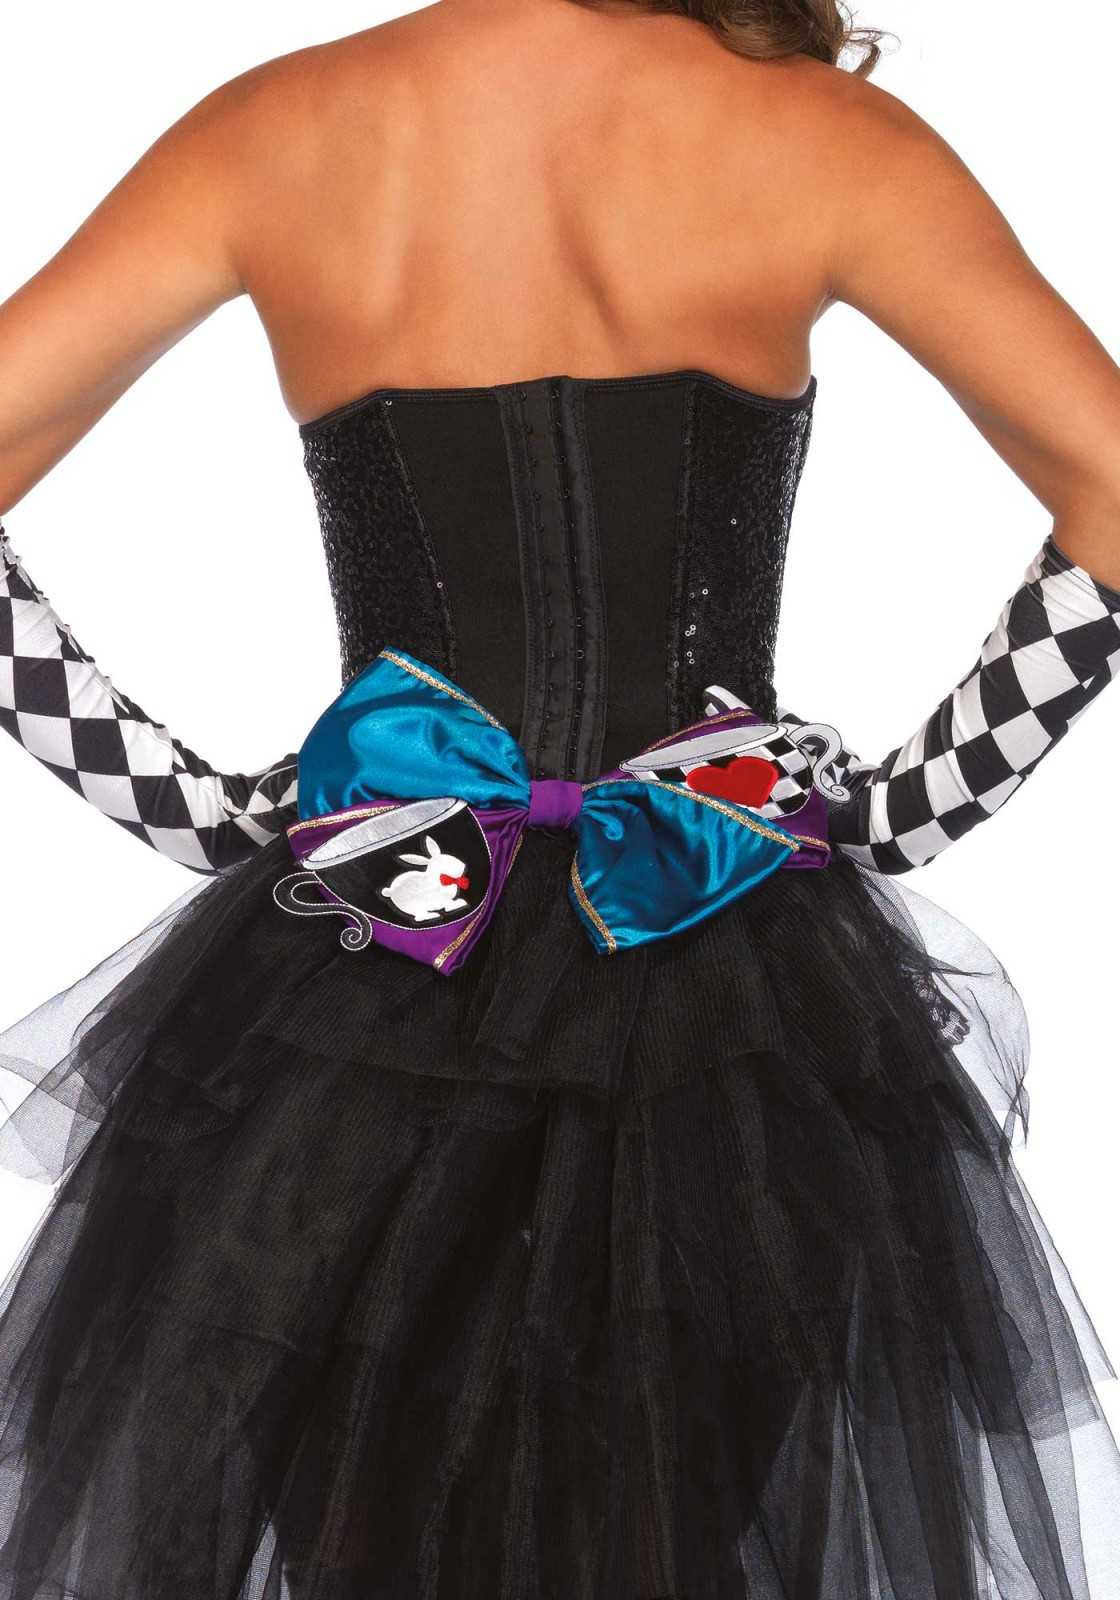 This oversized bow is well known from the famous tea party in Wonderland, it's a fun accessory to any outfit. The bow can be worn in different ways. It can be word as a headband but the bow can also be pinned on clothing with a safety pin. The bow includes a headband and safety pin.